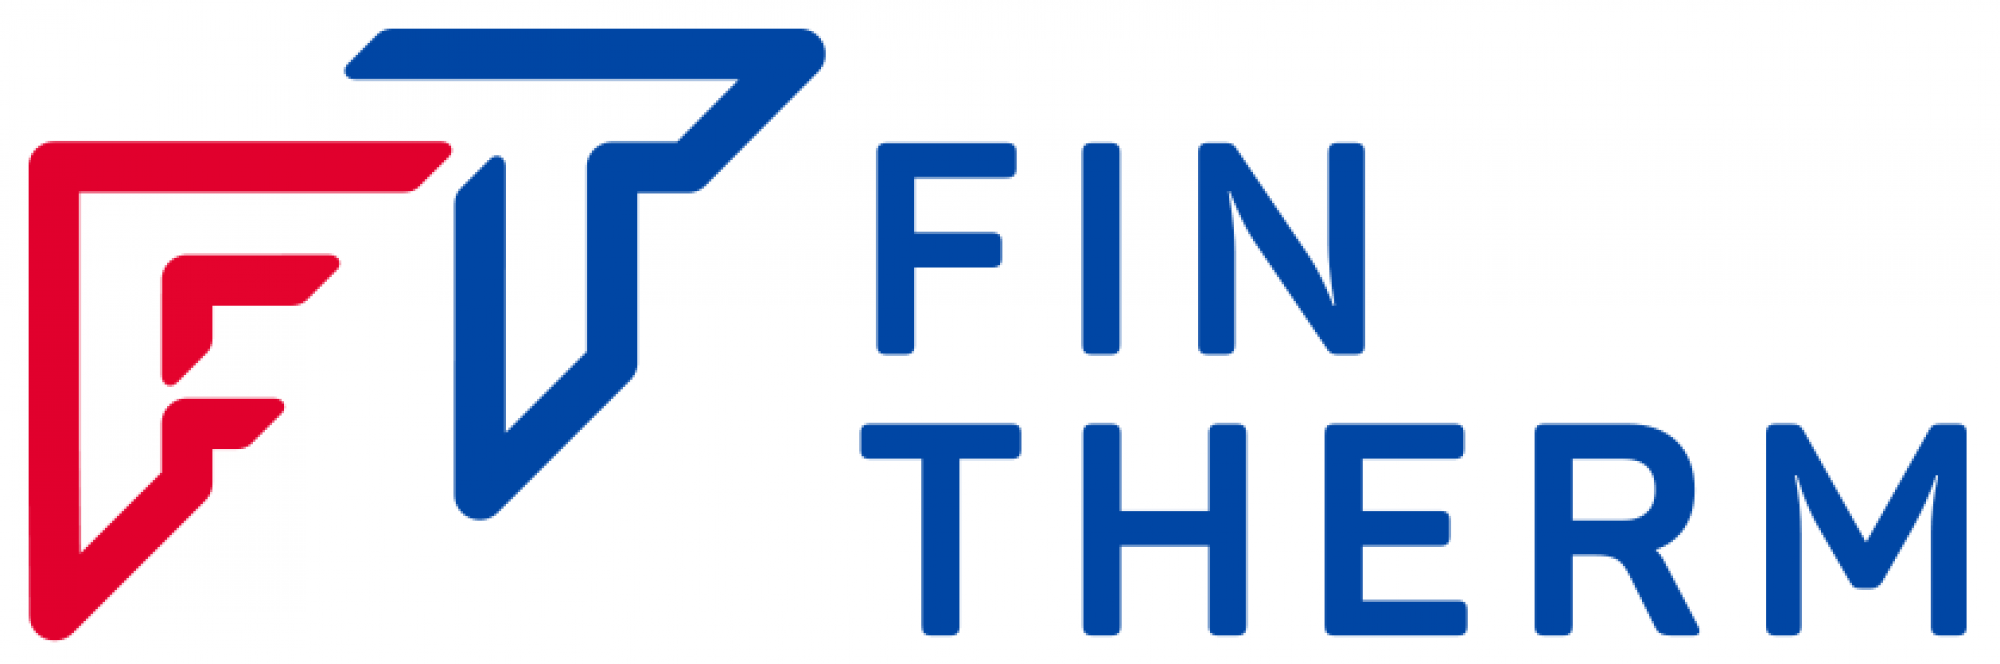 Announcement of the entry of a new owner and change of the company's business name to Fintherm a.s.